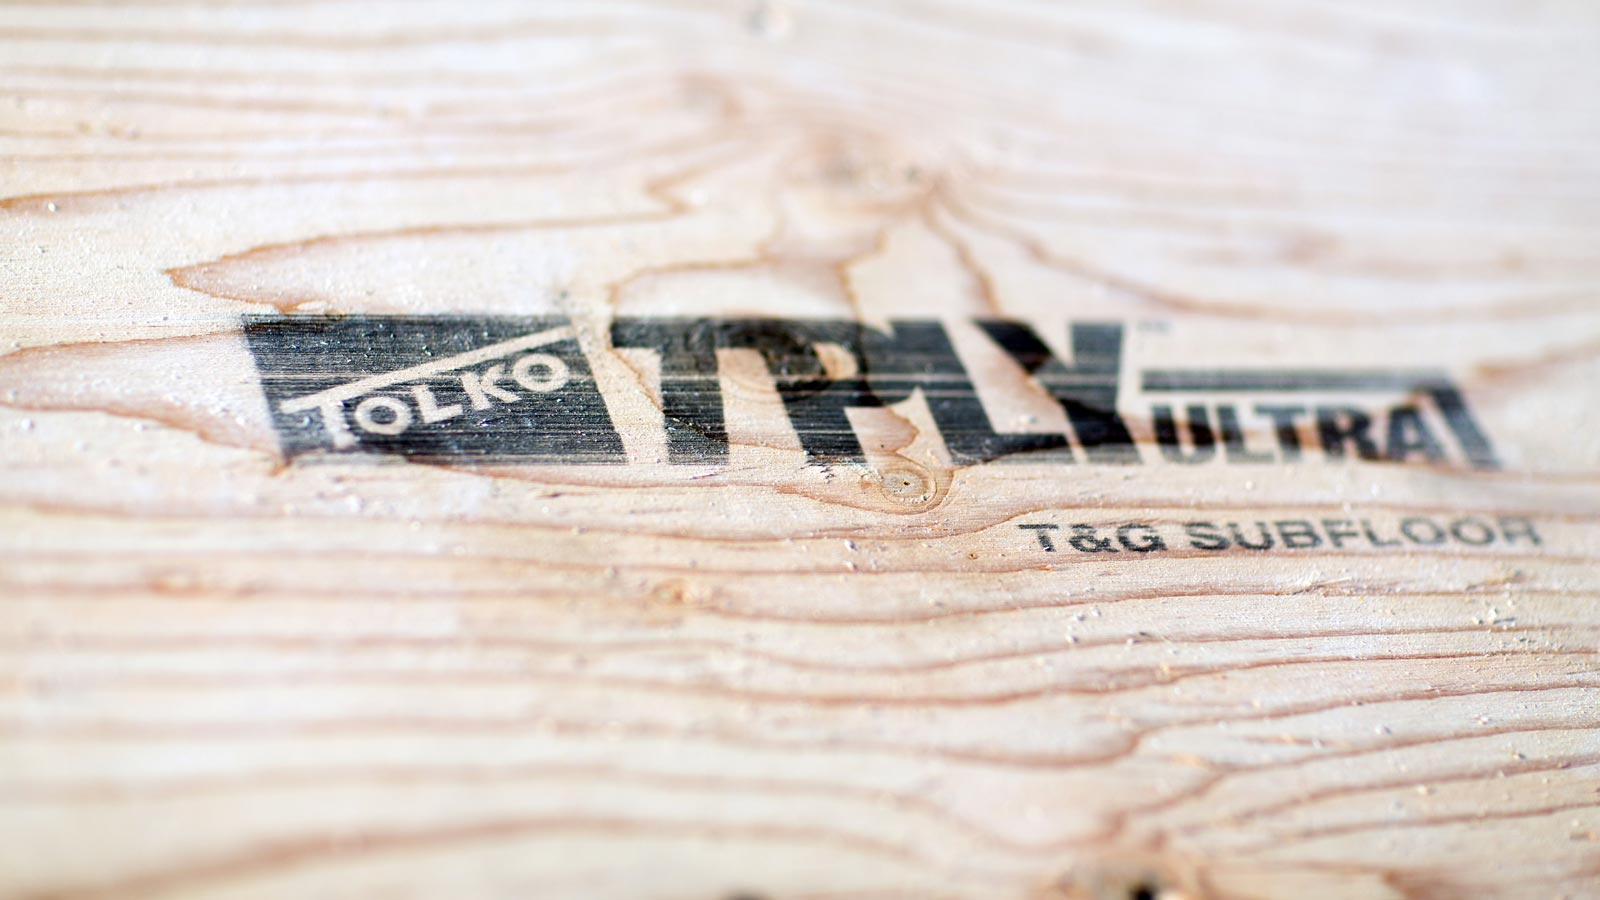 Tolko T-Ply ULTRA T&G Subfloor product